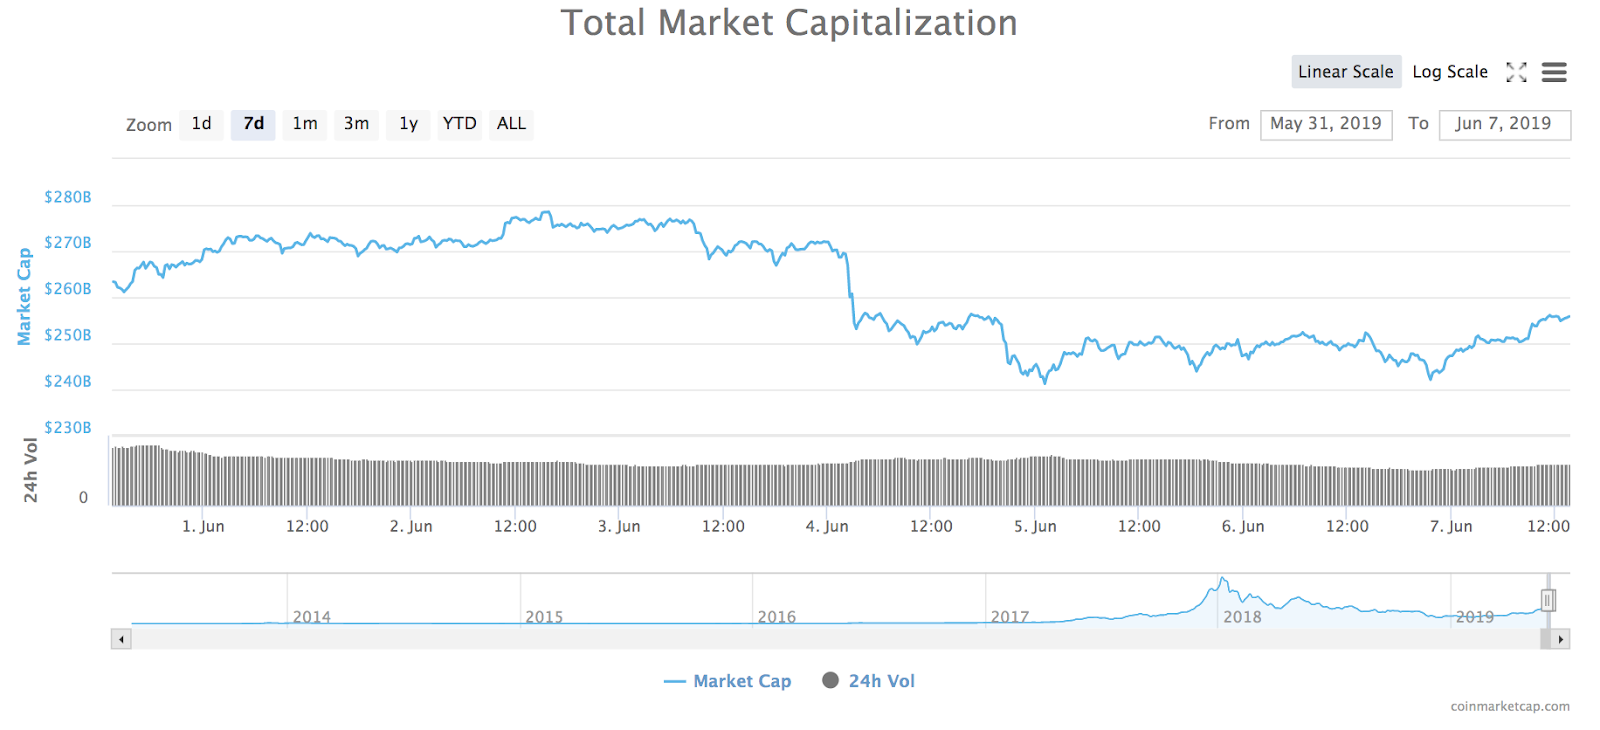 Total marketplace capitalization of all cryptocurrencies